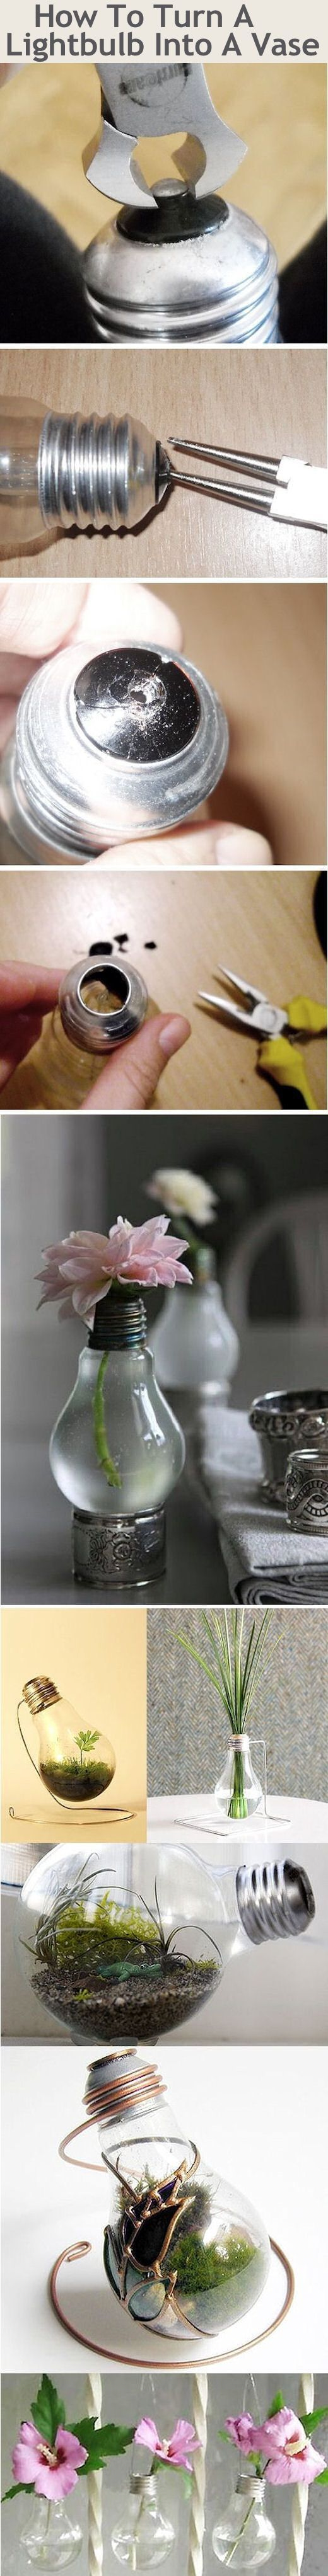 How To Turn A Light Bulb Into A Vase Pictures, Photos, and Images for Facebook, Tumblr, Pinterest, and Twitter